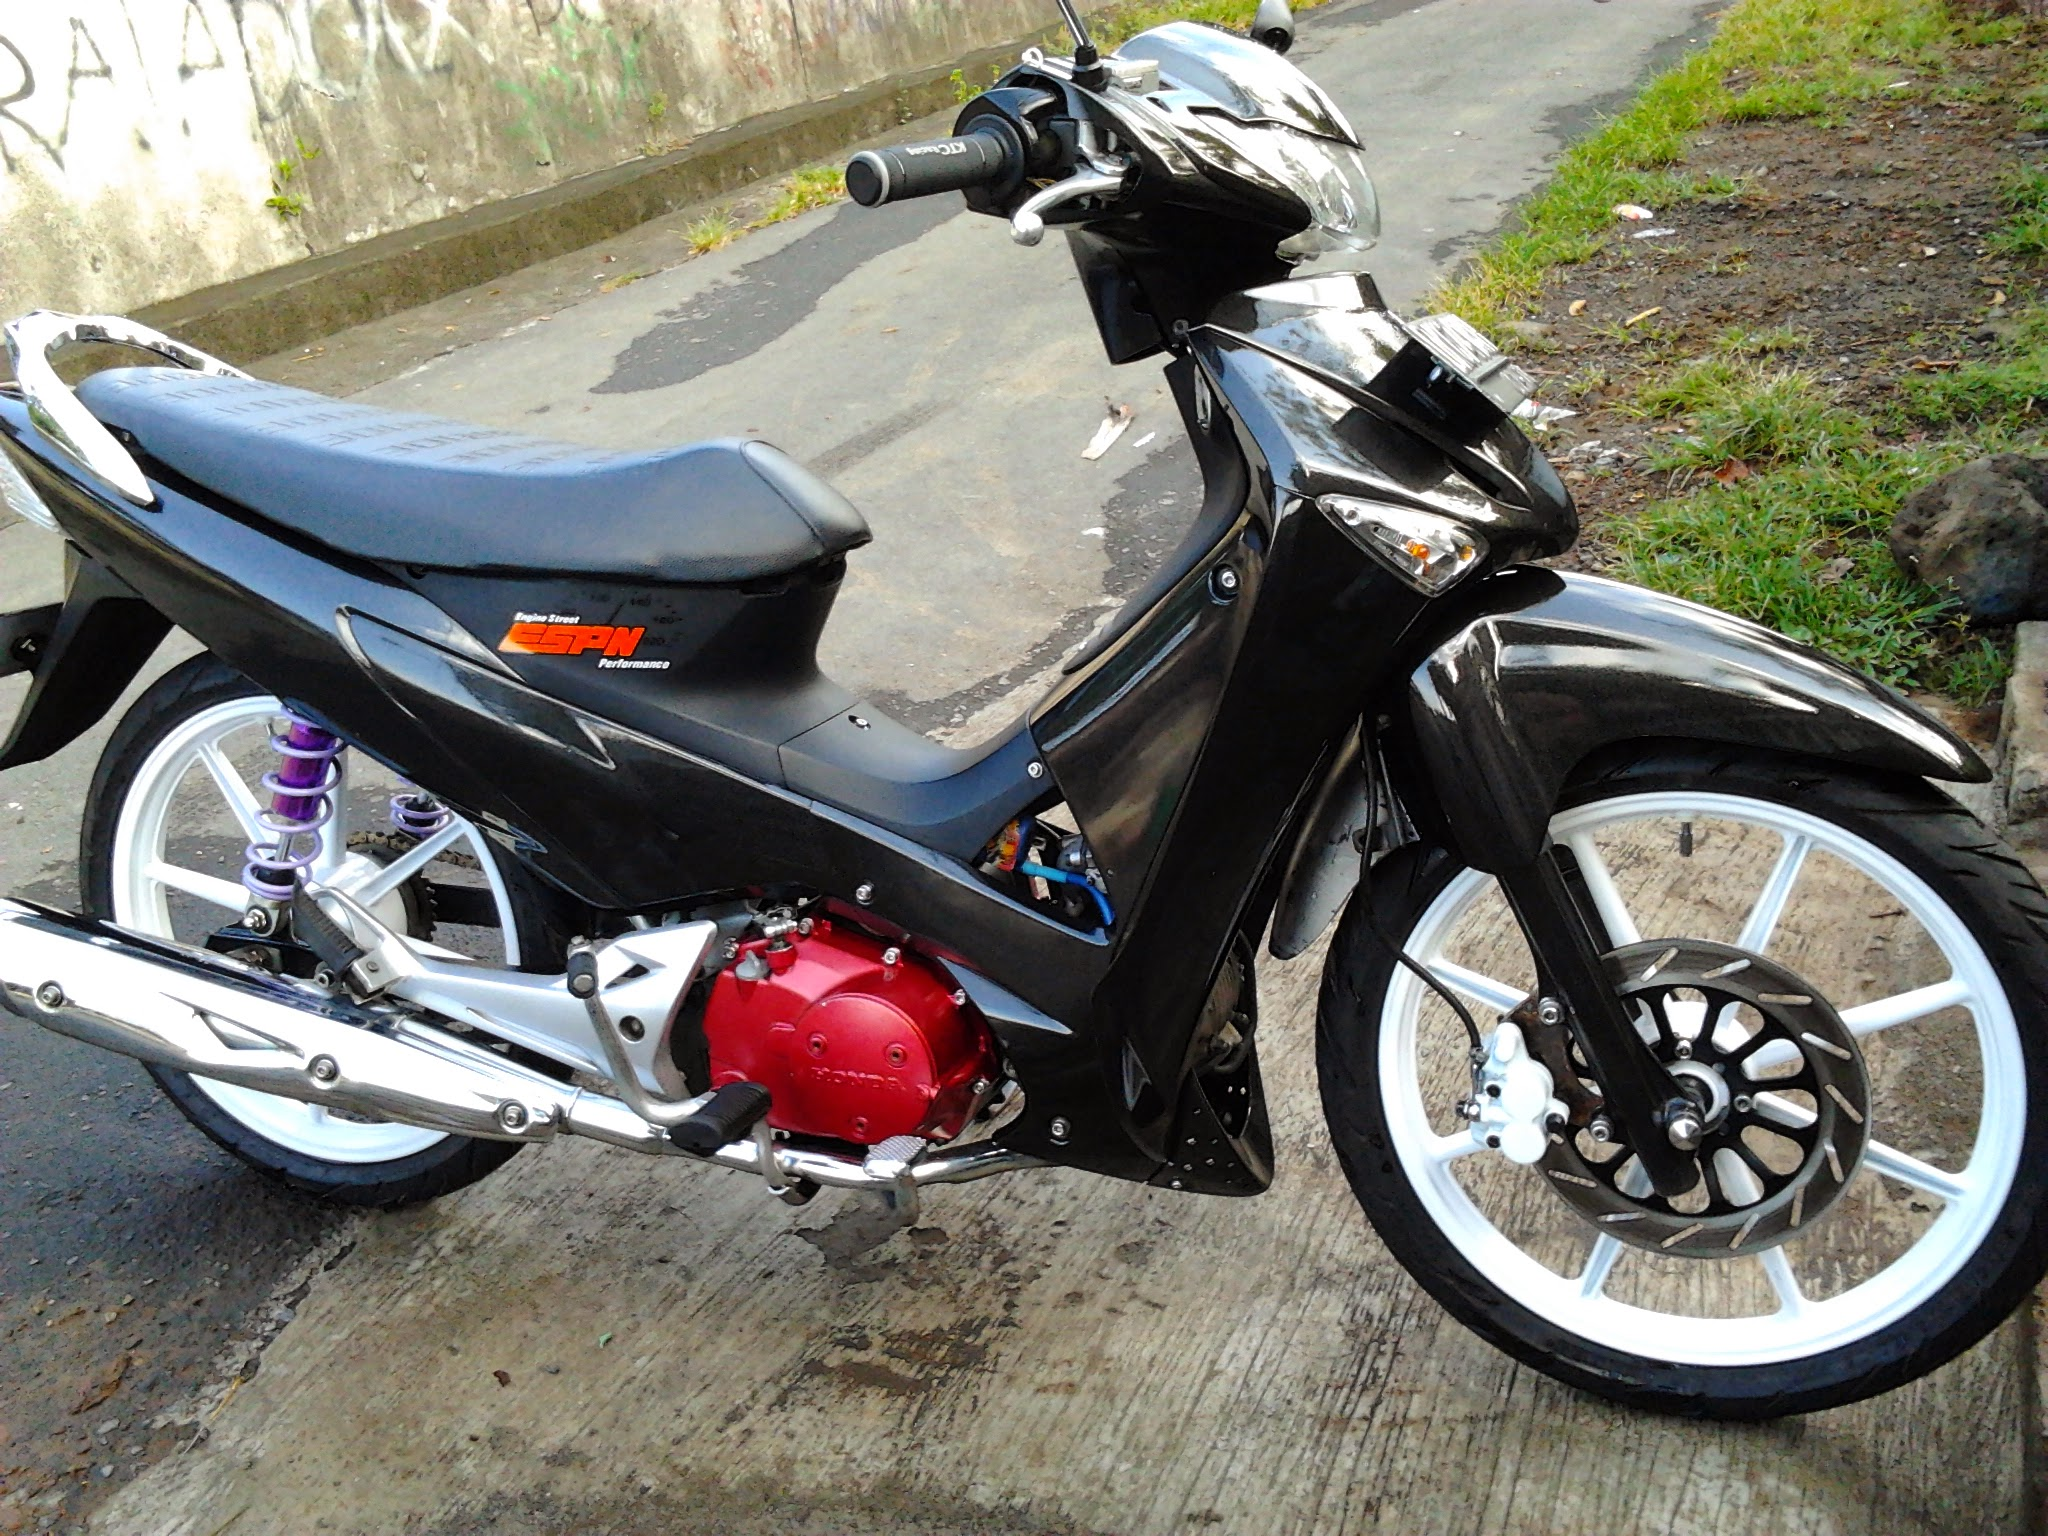 Modifikasi Supra X 125 Warna Putih